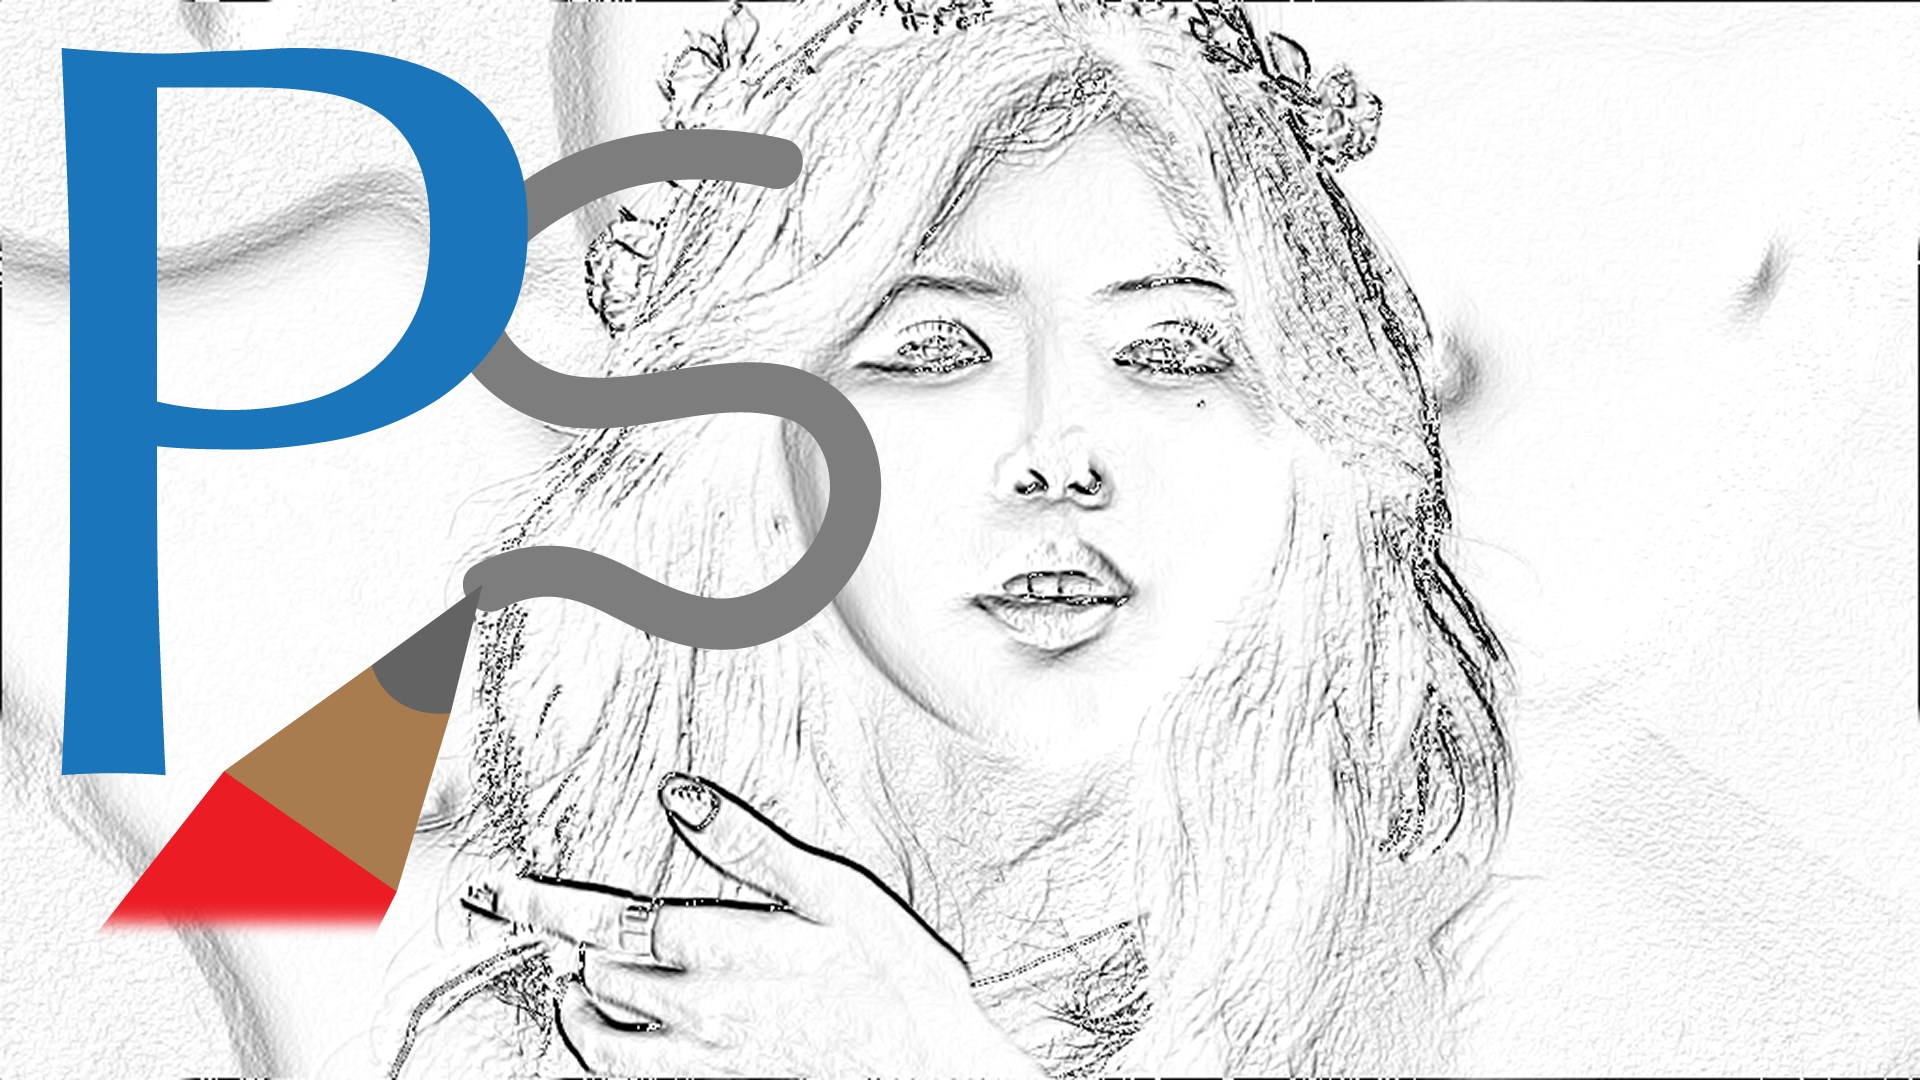 Pencil Sketch Photo Editor Free Download For Pc